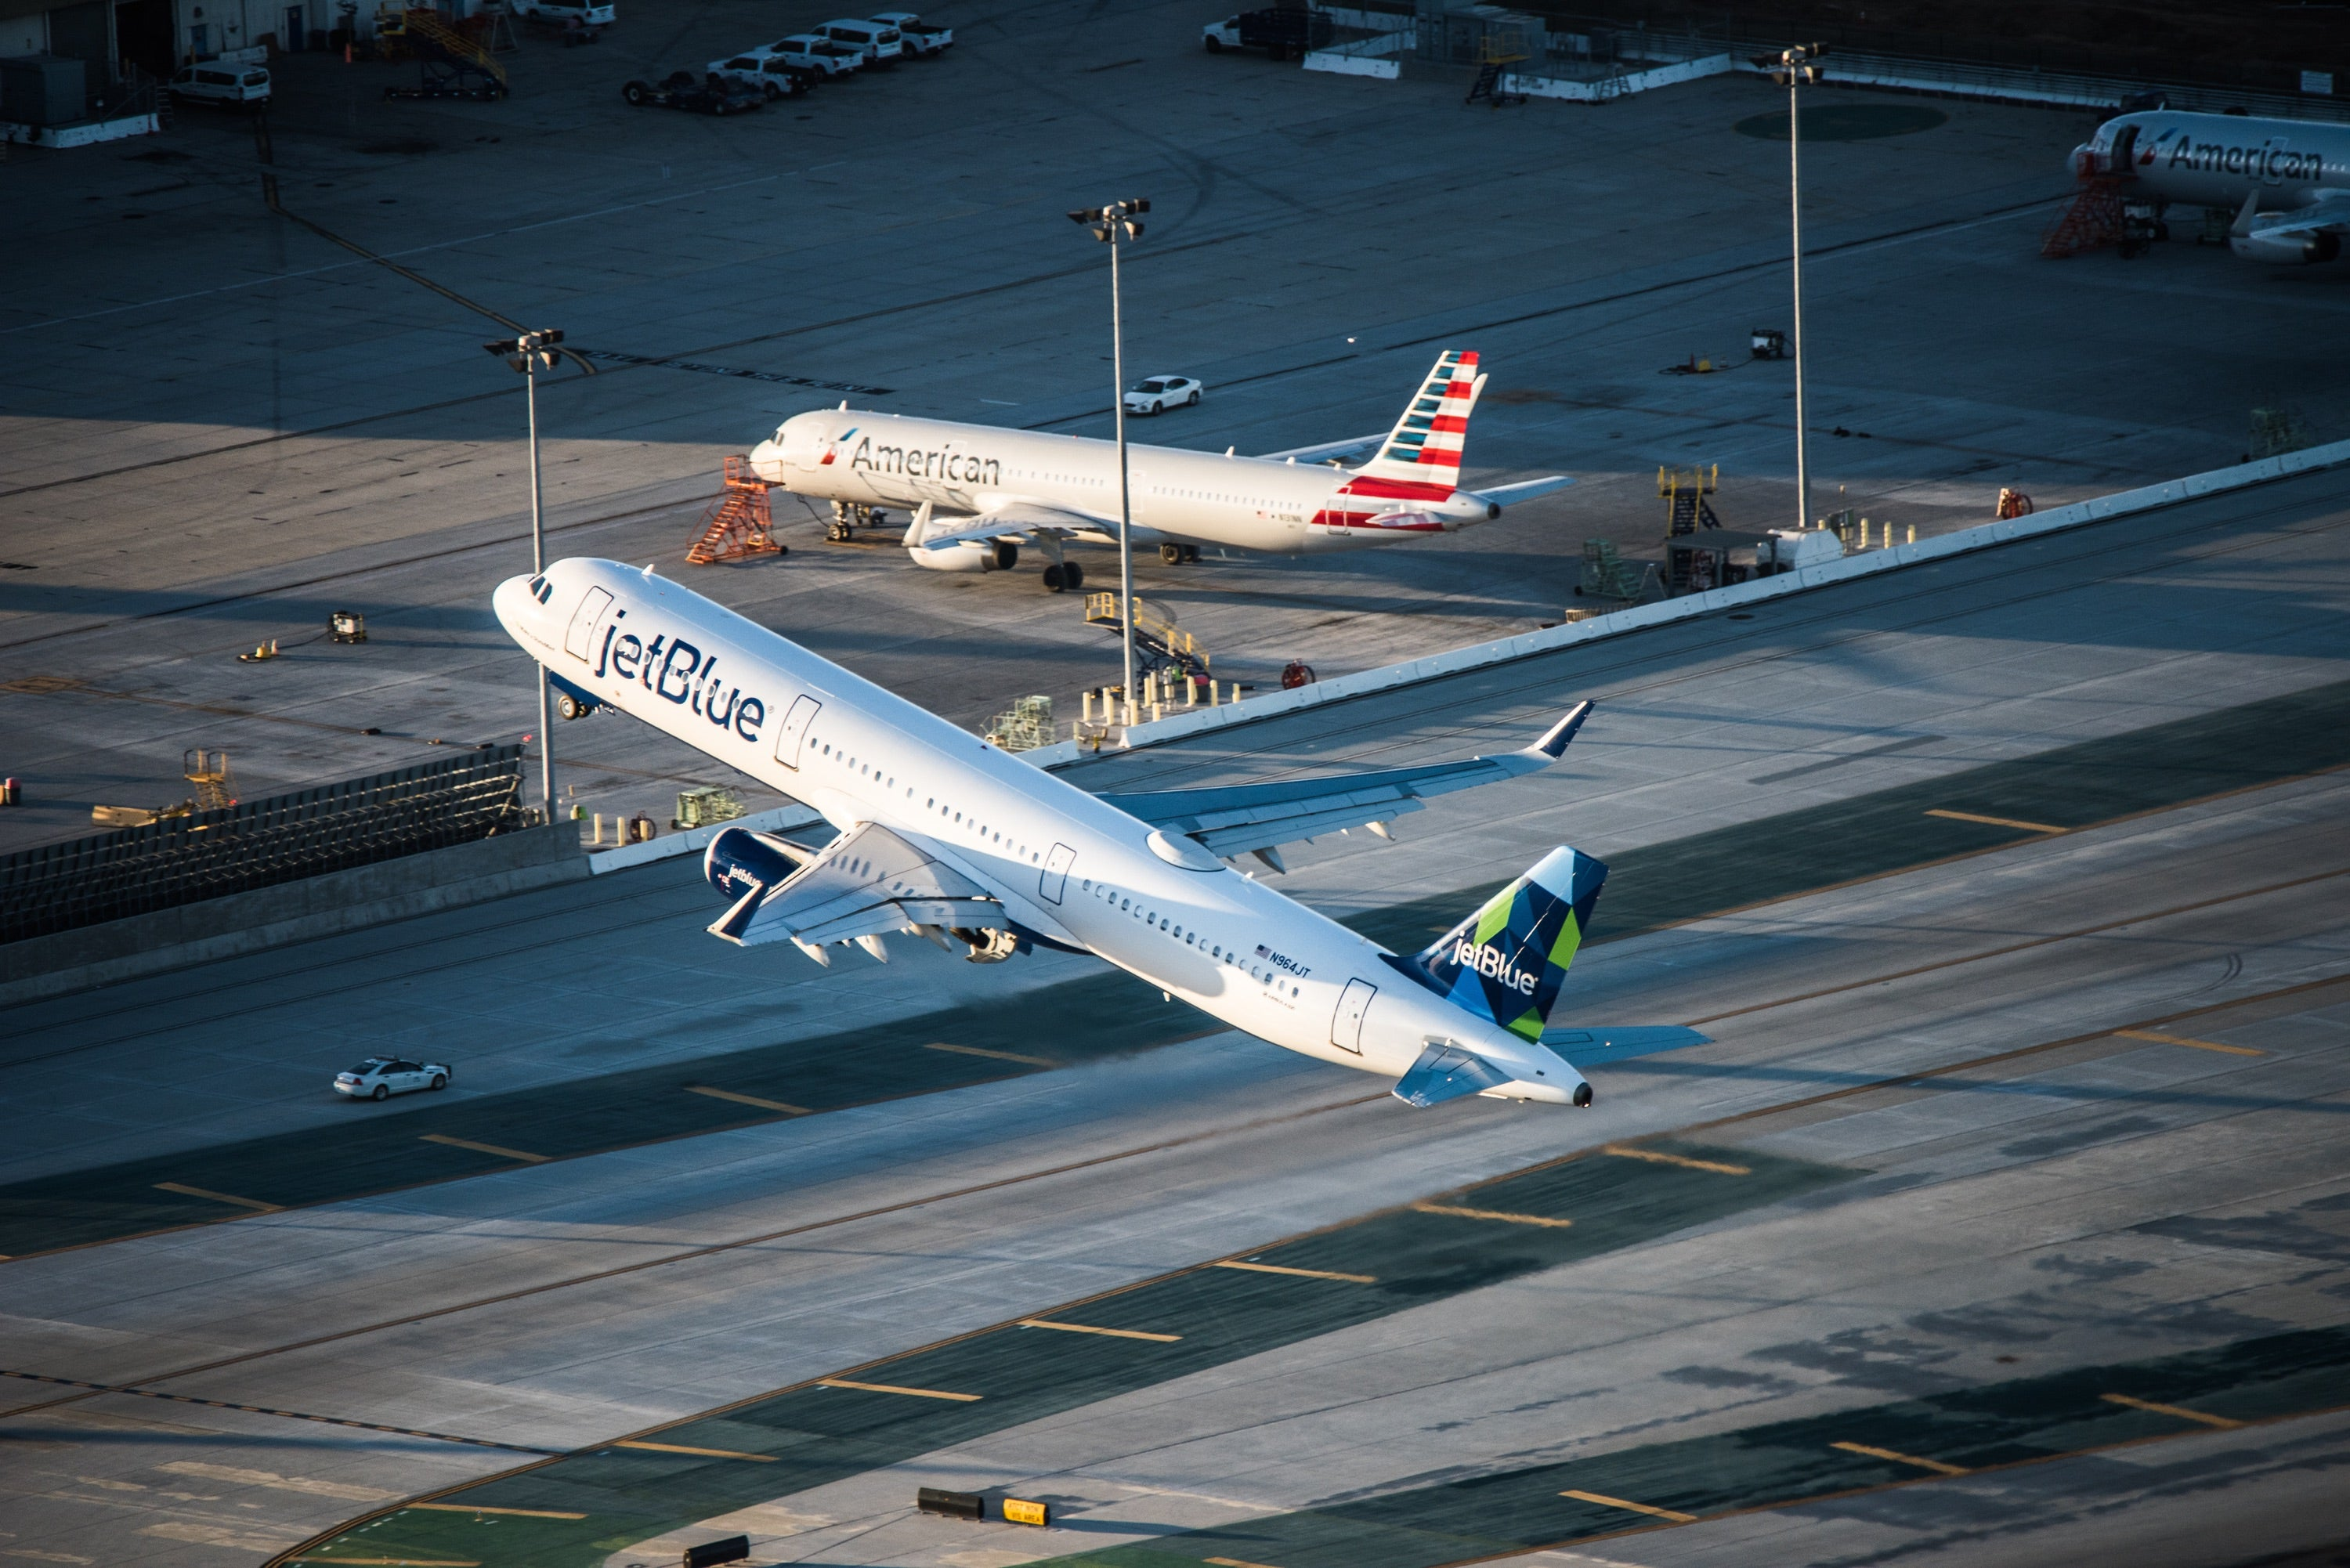 8 things you should know about the new American Airlines-JetBlue partnership - The Points Guy